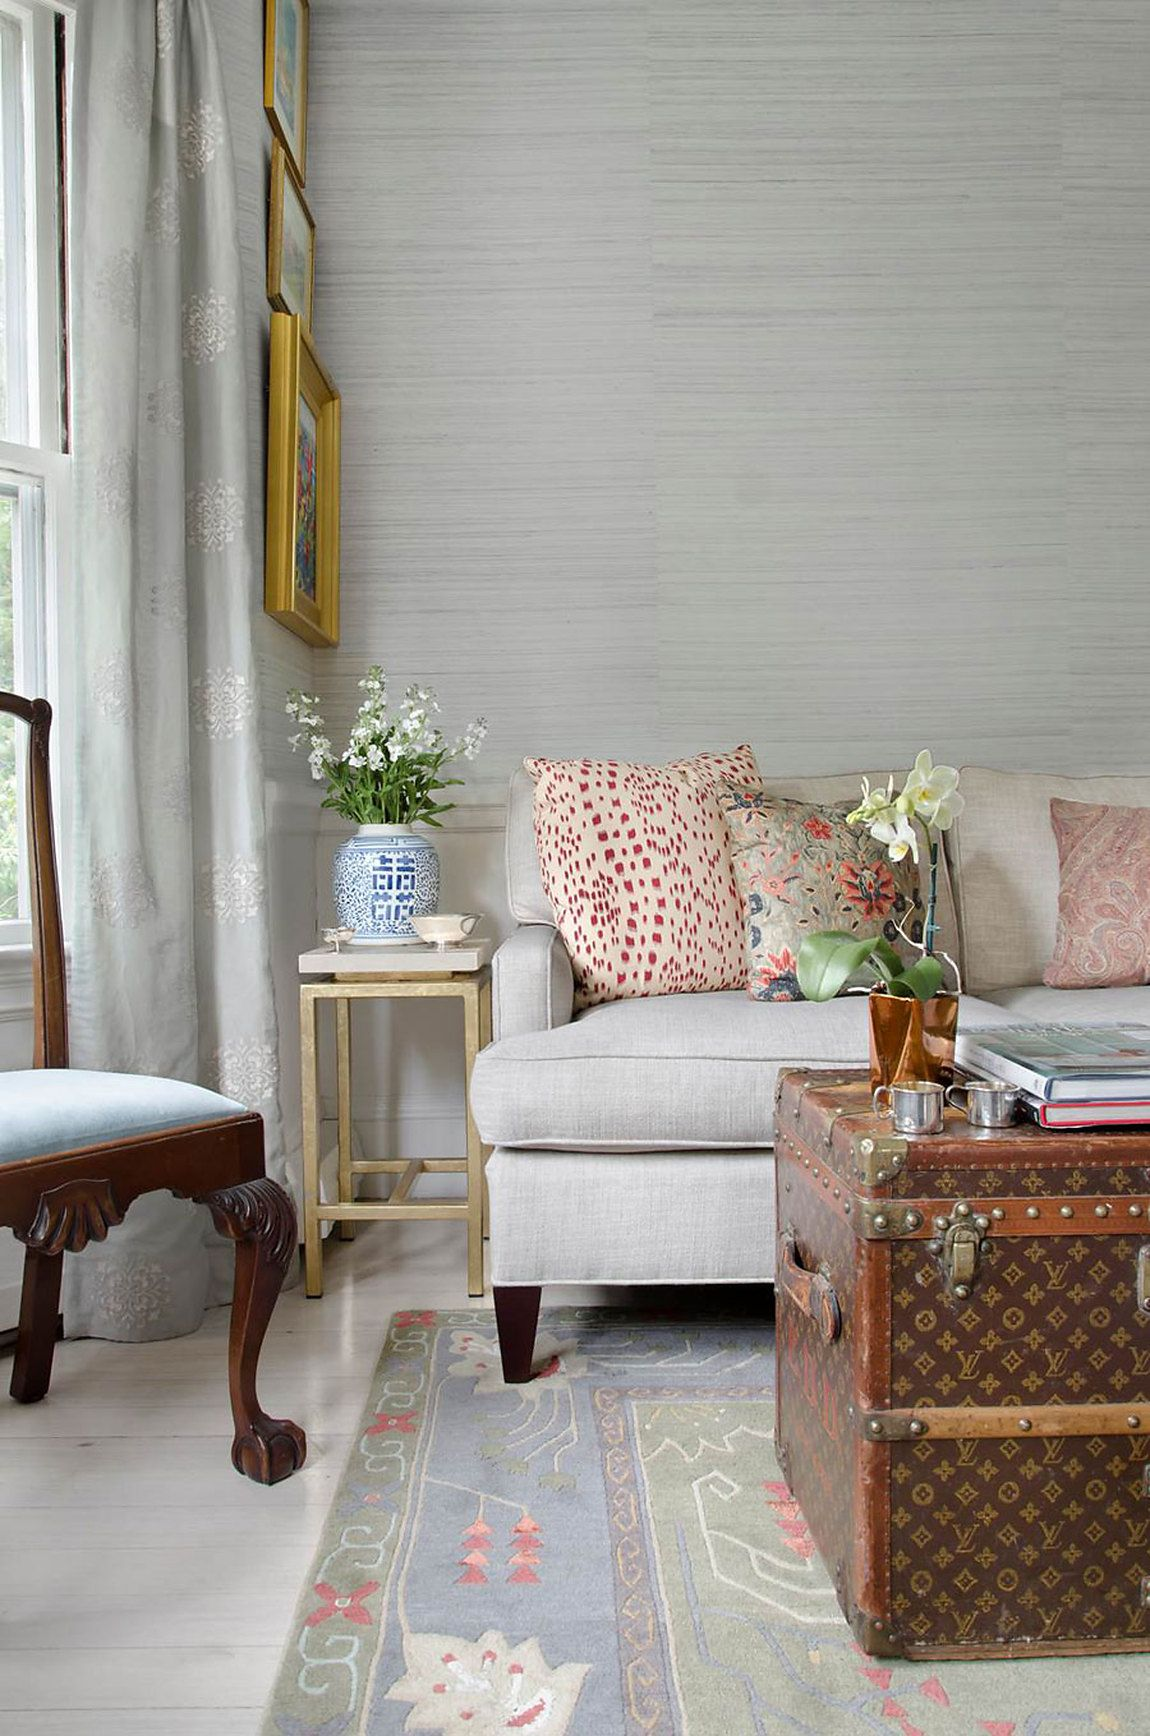 Modern Wallpaper Designs For Living Room: Showhouse Gallery • Grasscloth Wallpaper • Natural